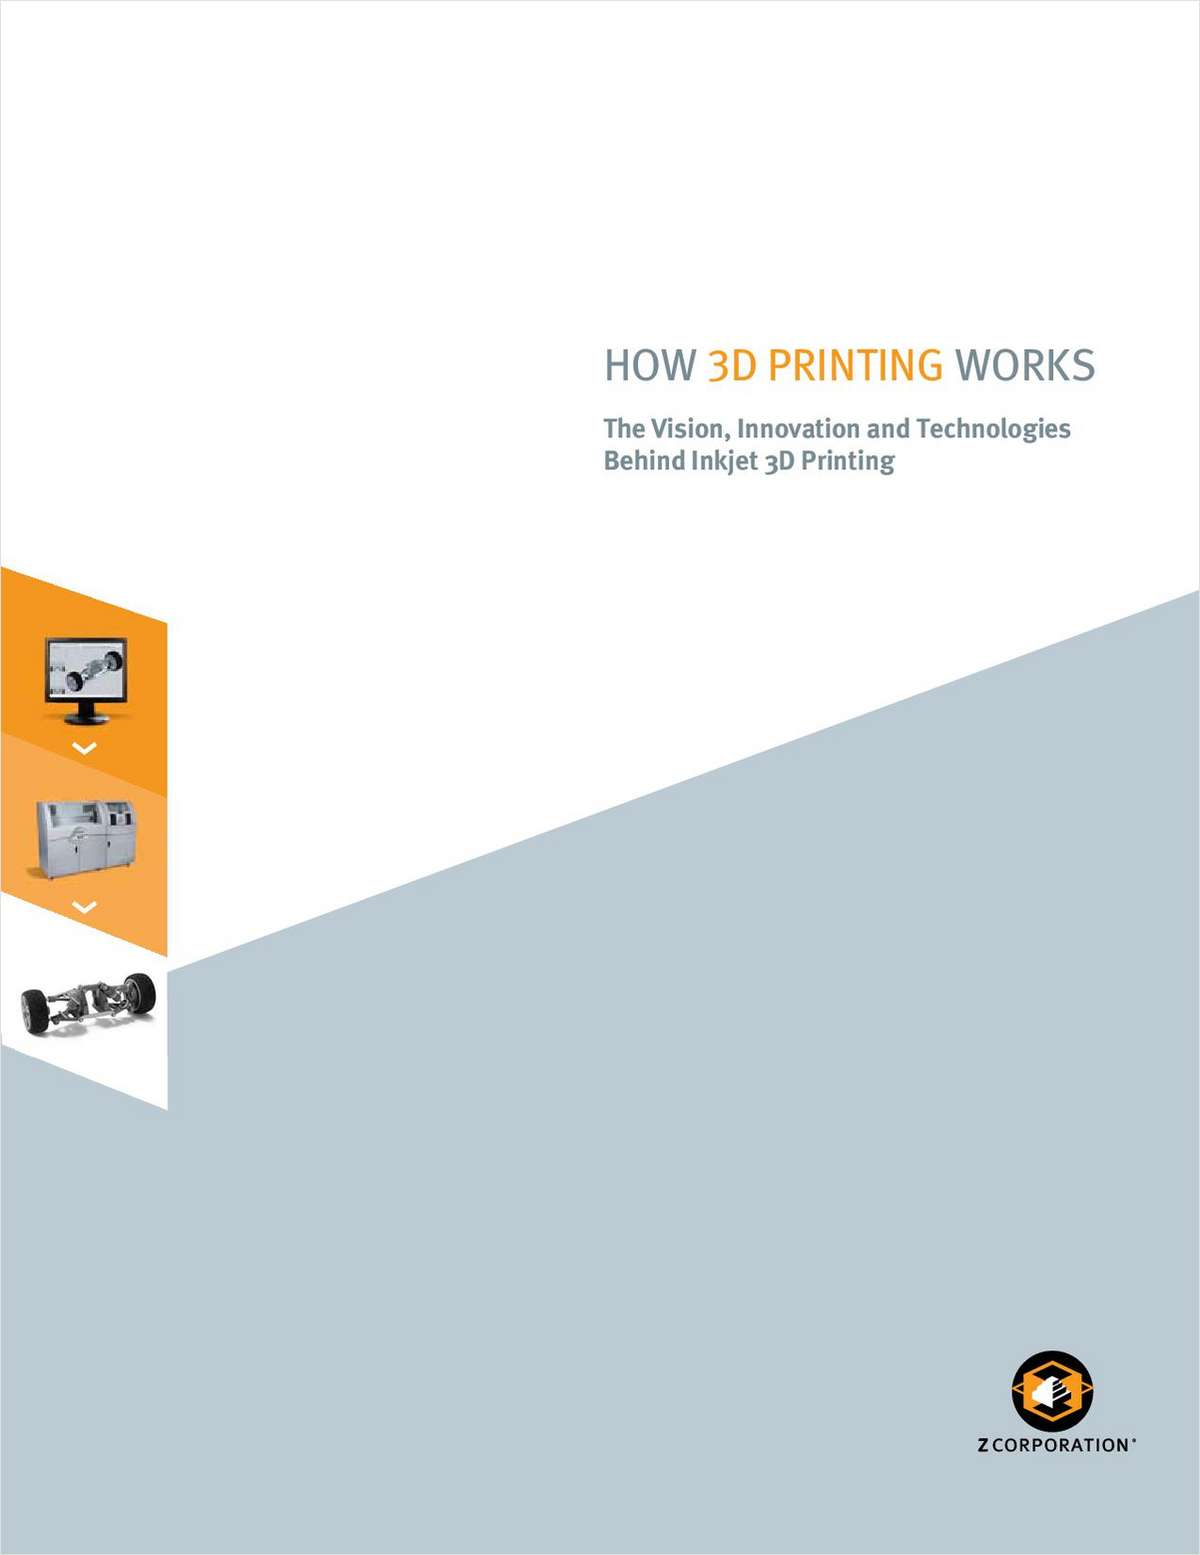 How 3D Printing Works: The Vision, Innovation, and Technologies Behind Inkjet 3D Printing